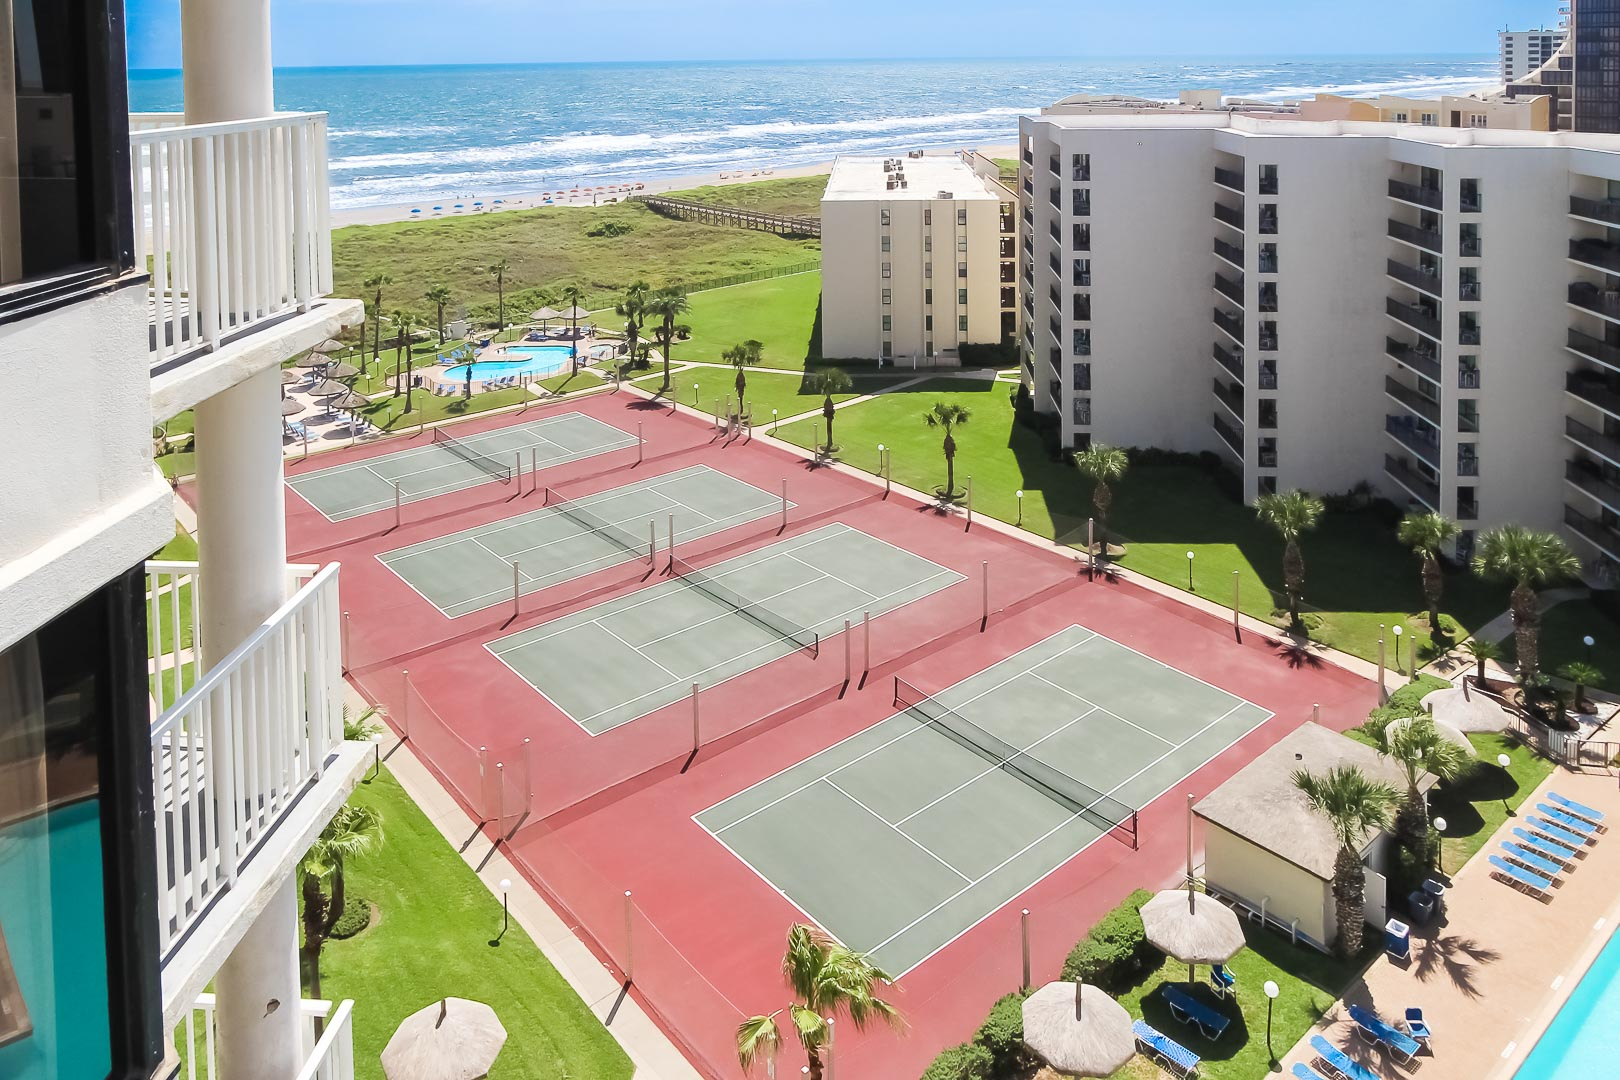 Beachfront Outdoor tennis courts at VRI's Royale Beach and Tennis Club.